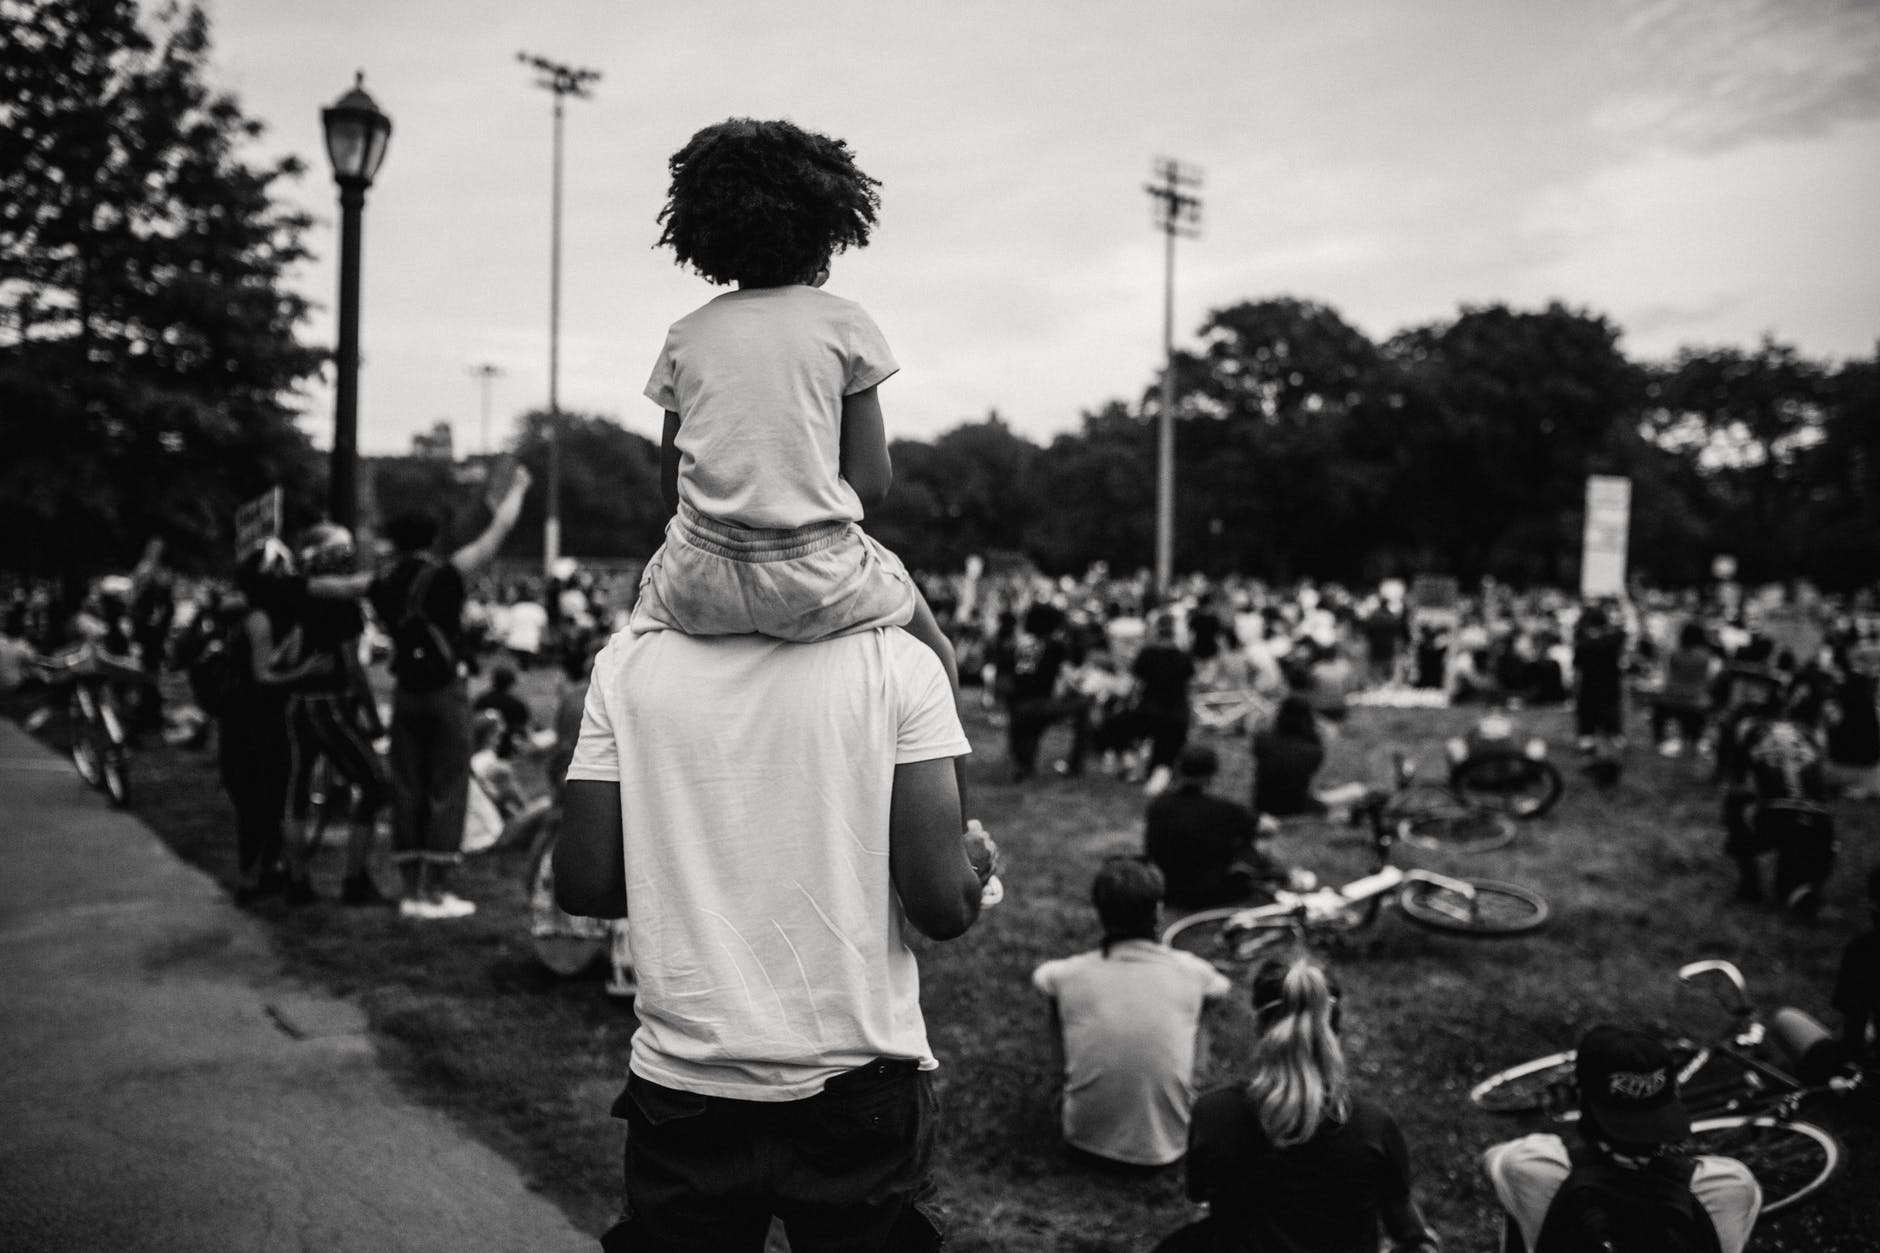 person with a child on his shoulders looking at a protest